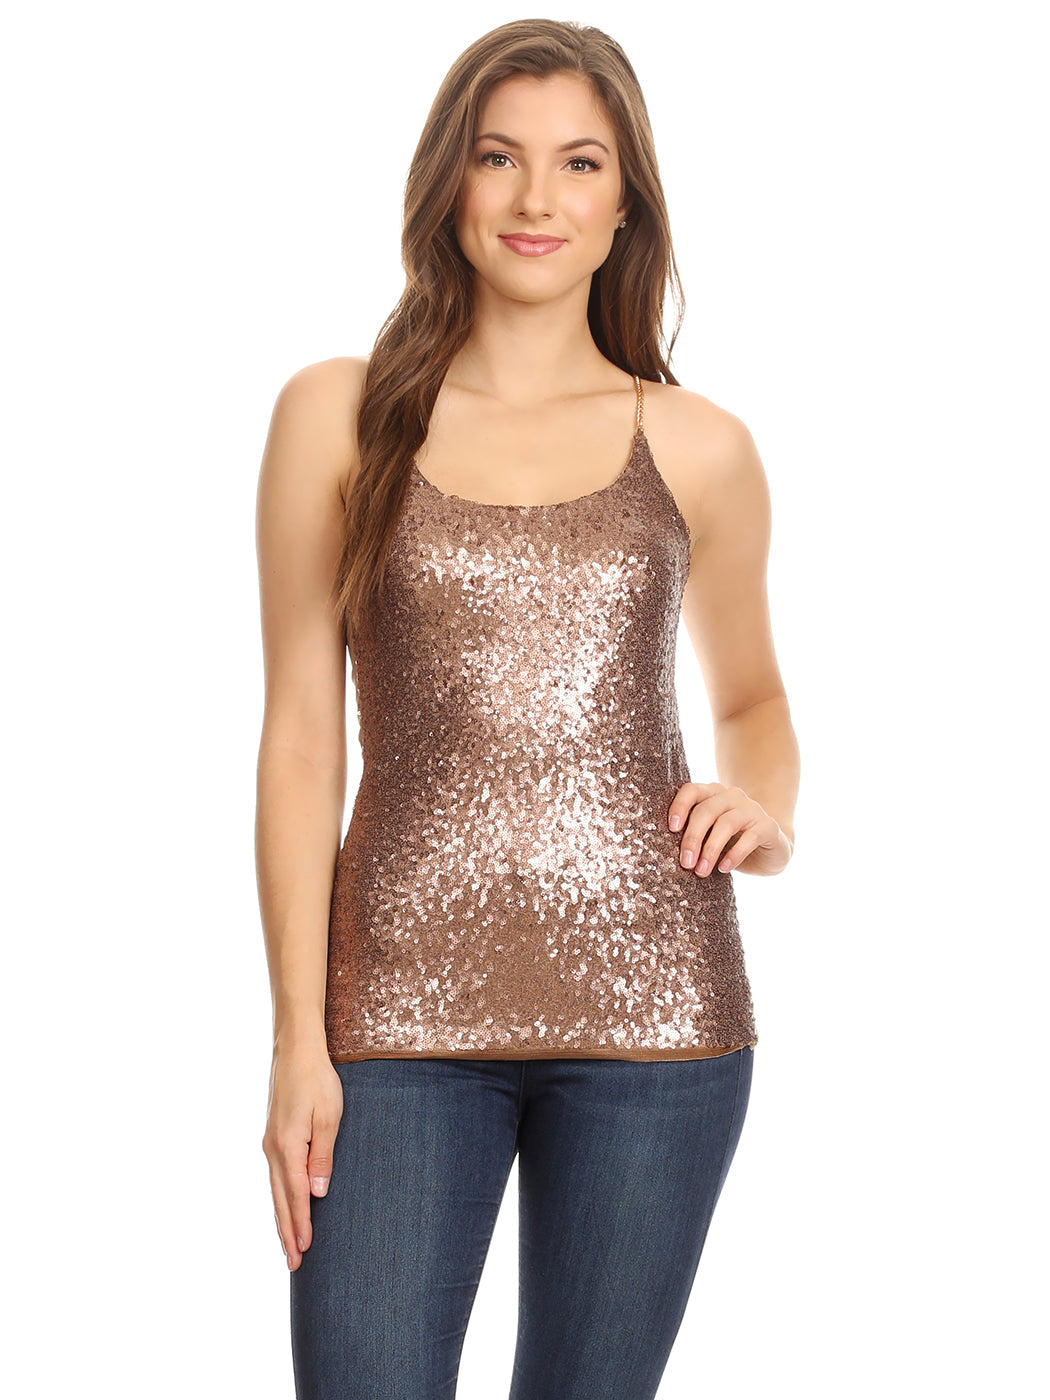 Anna-Kaci Womens Spaghetti Strap Sequin Metal Chain Shiny Party Club Camisole Tank Top